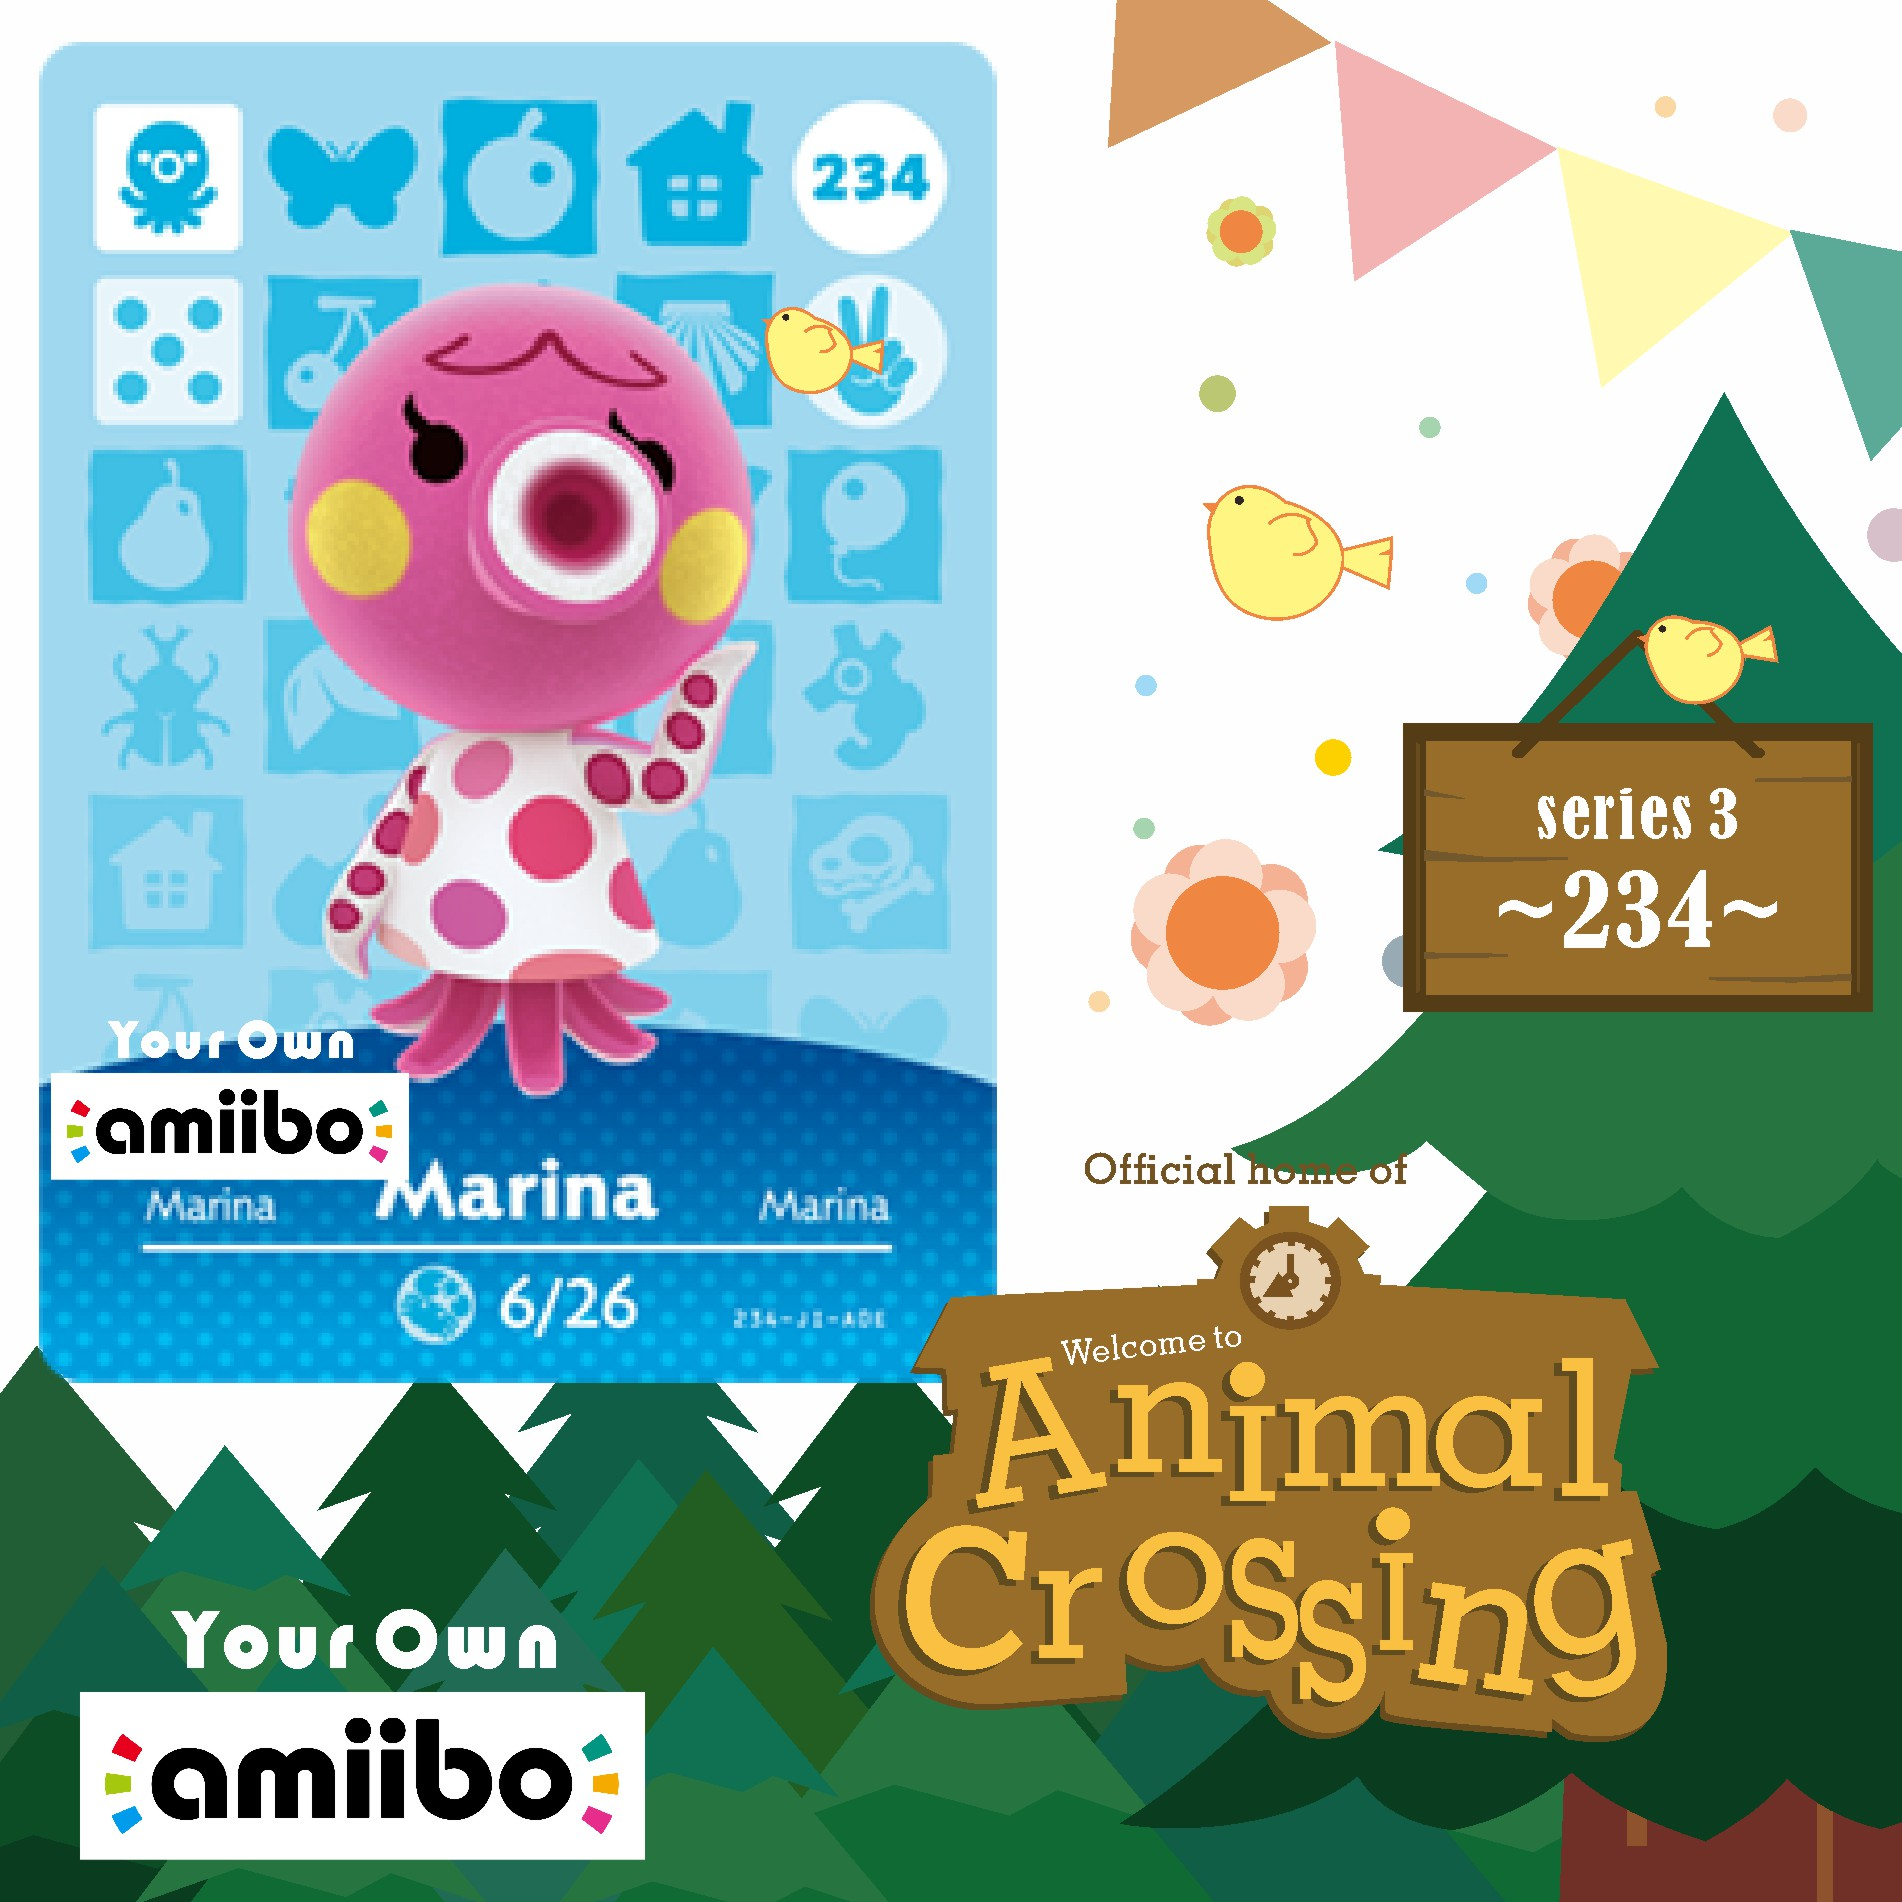 Amiibo 234 Animal Crossing Octopus Animal Crossing Amiibo Card Marina Welcome Amiibo New Horizon Villager Card 234 Series 3